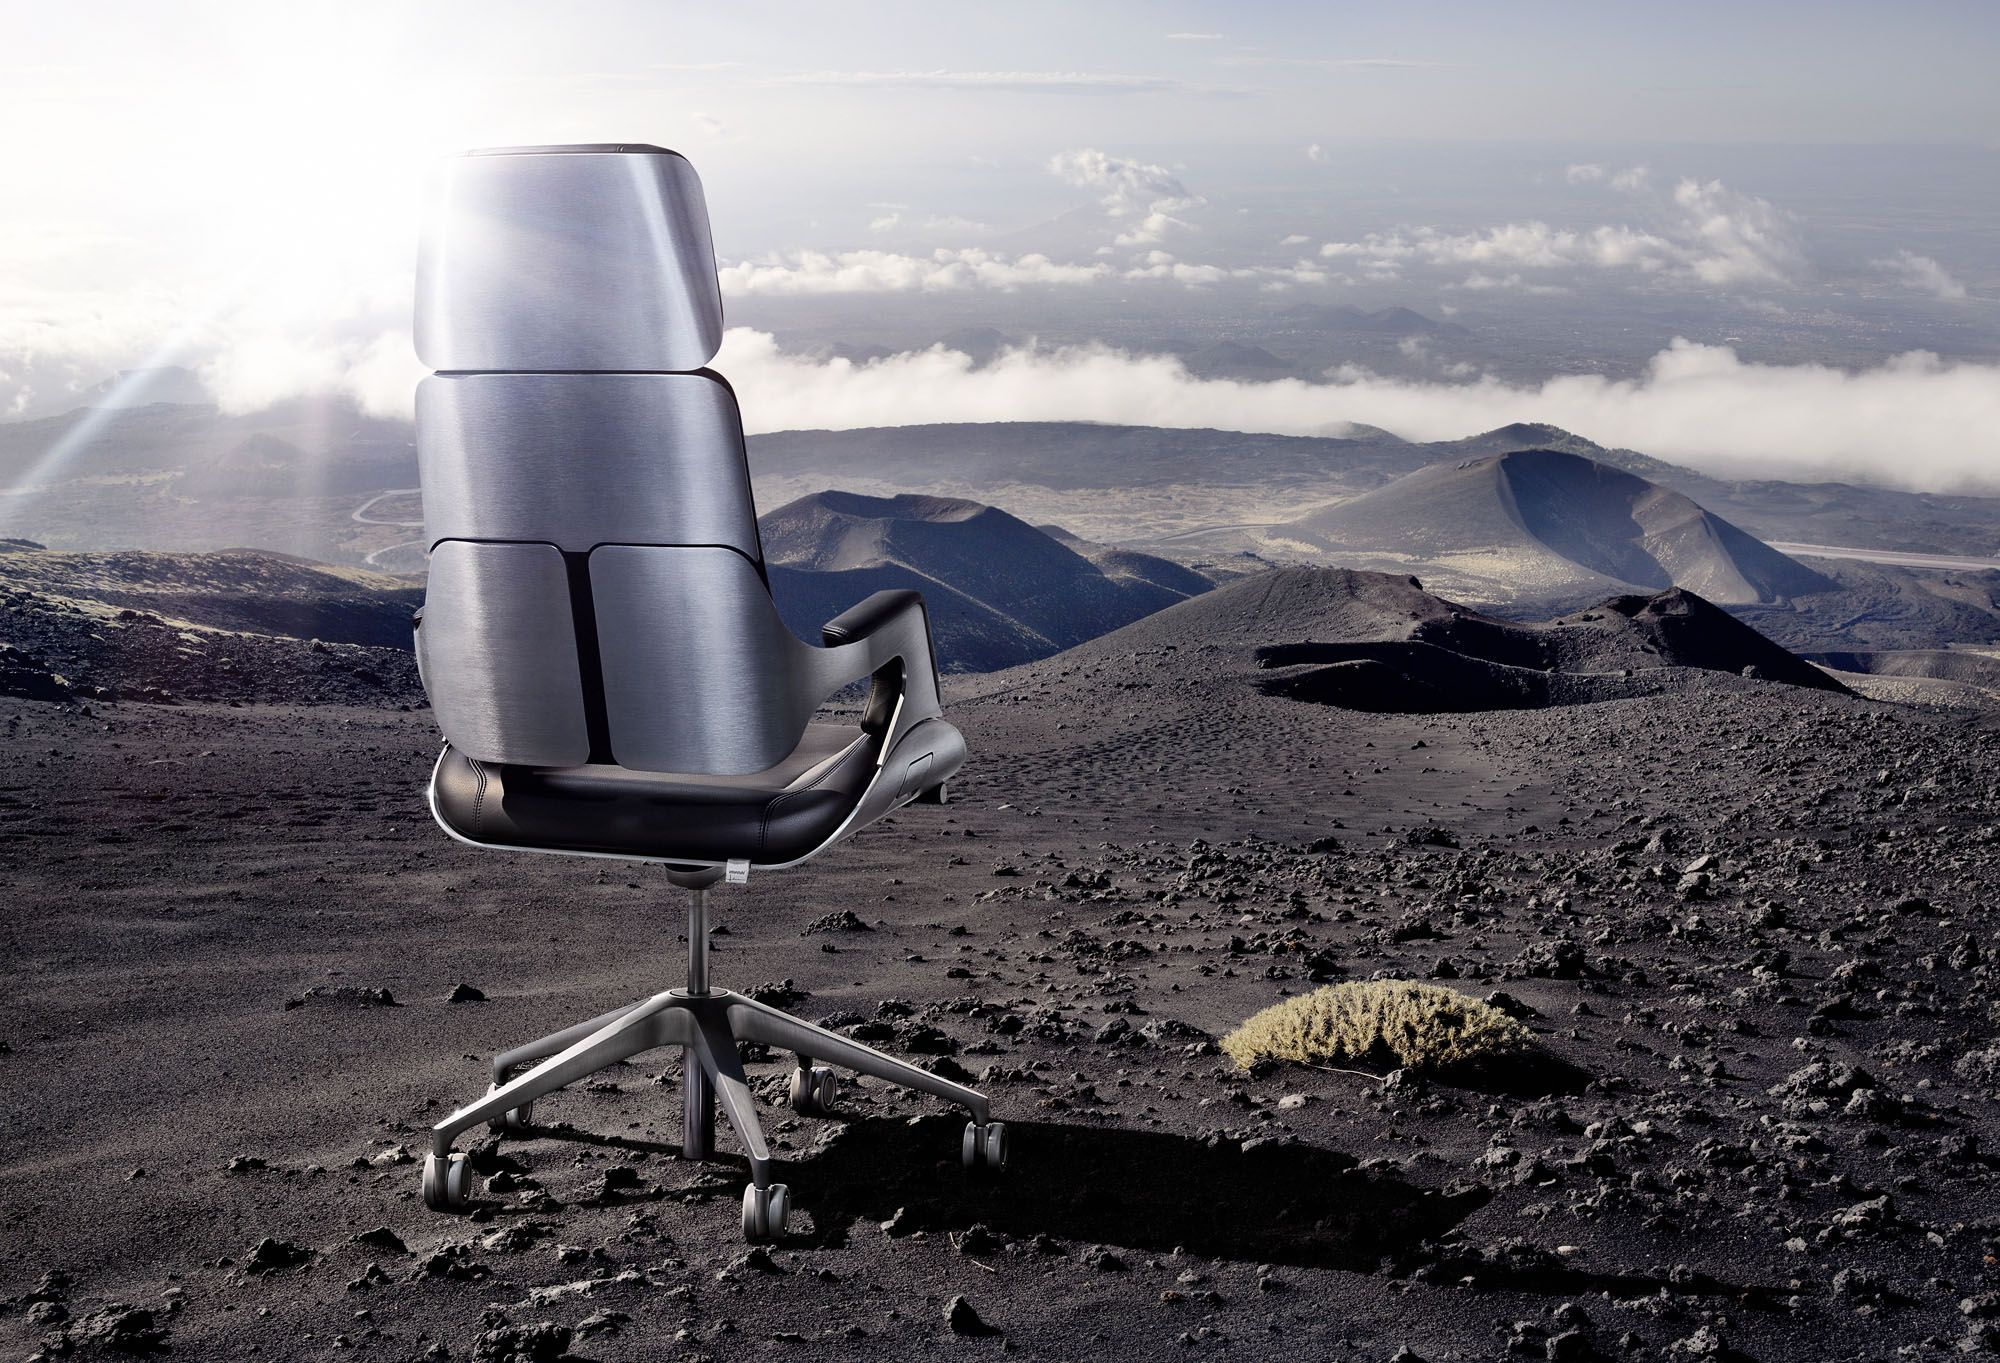 The silver chair bbc - Interstuhl Silver On The Moon